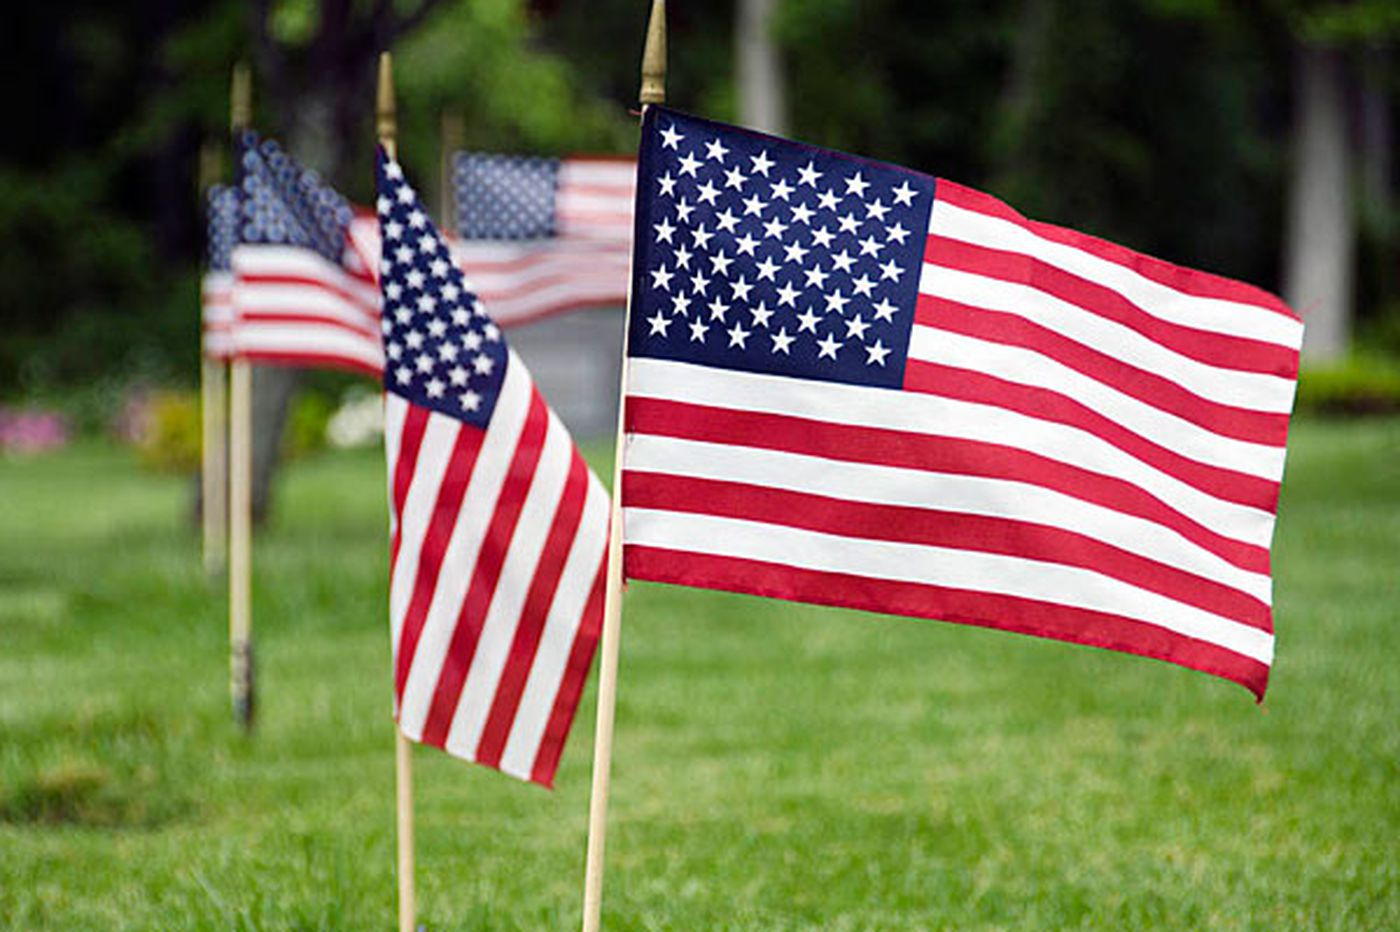 Memorial Day snafu left flags off graves